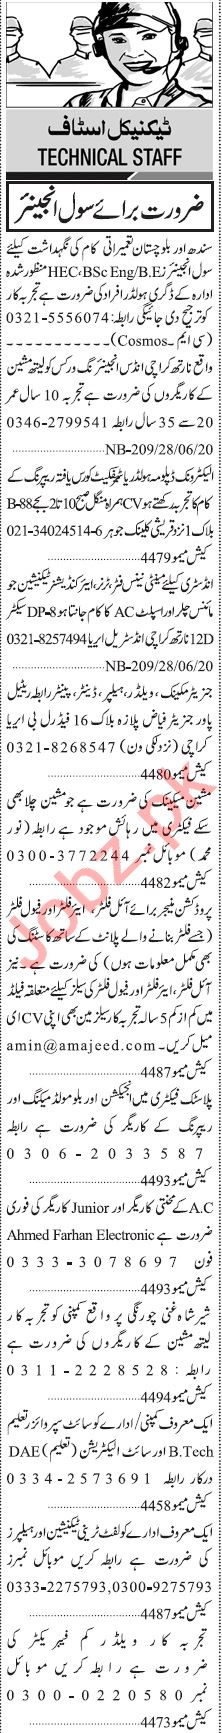 Jang Sunday Classified Ads 28 June 2020 for Engineering